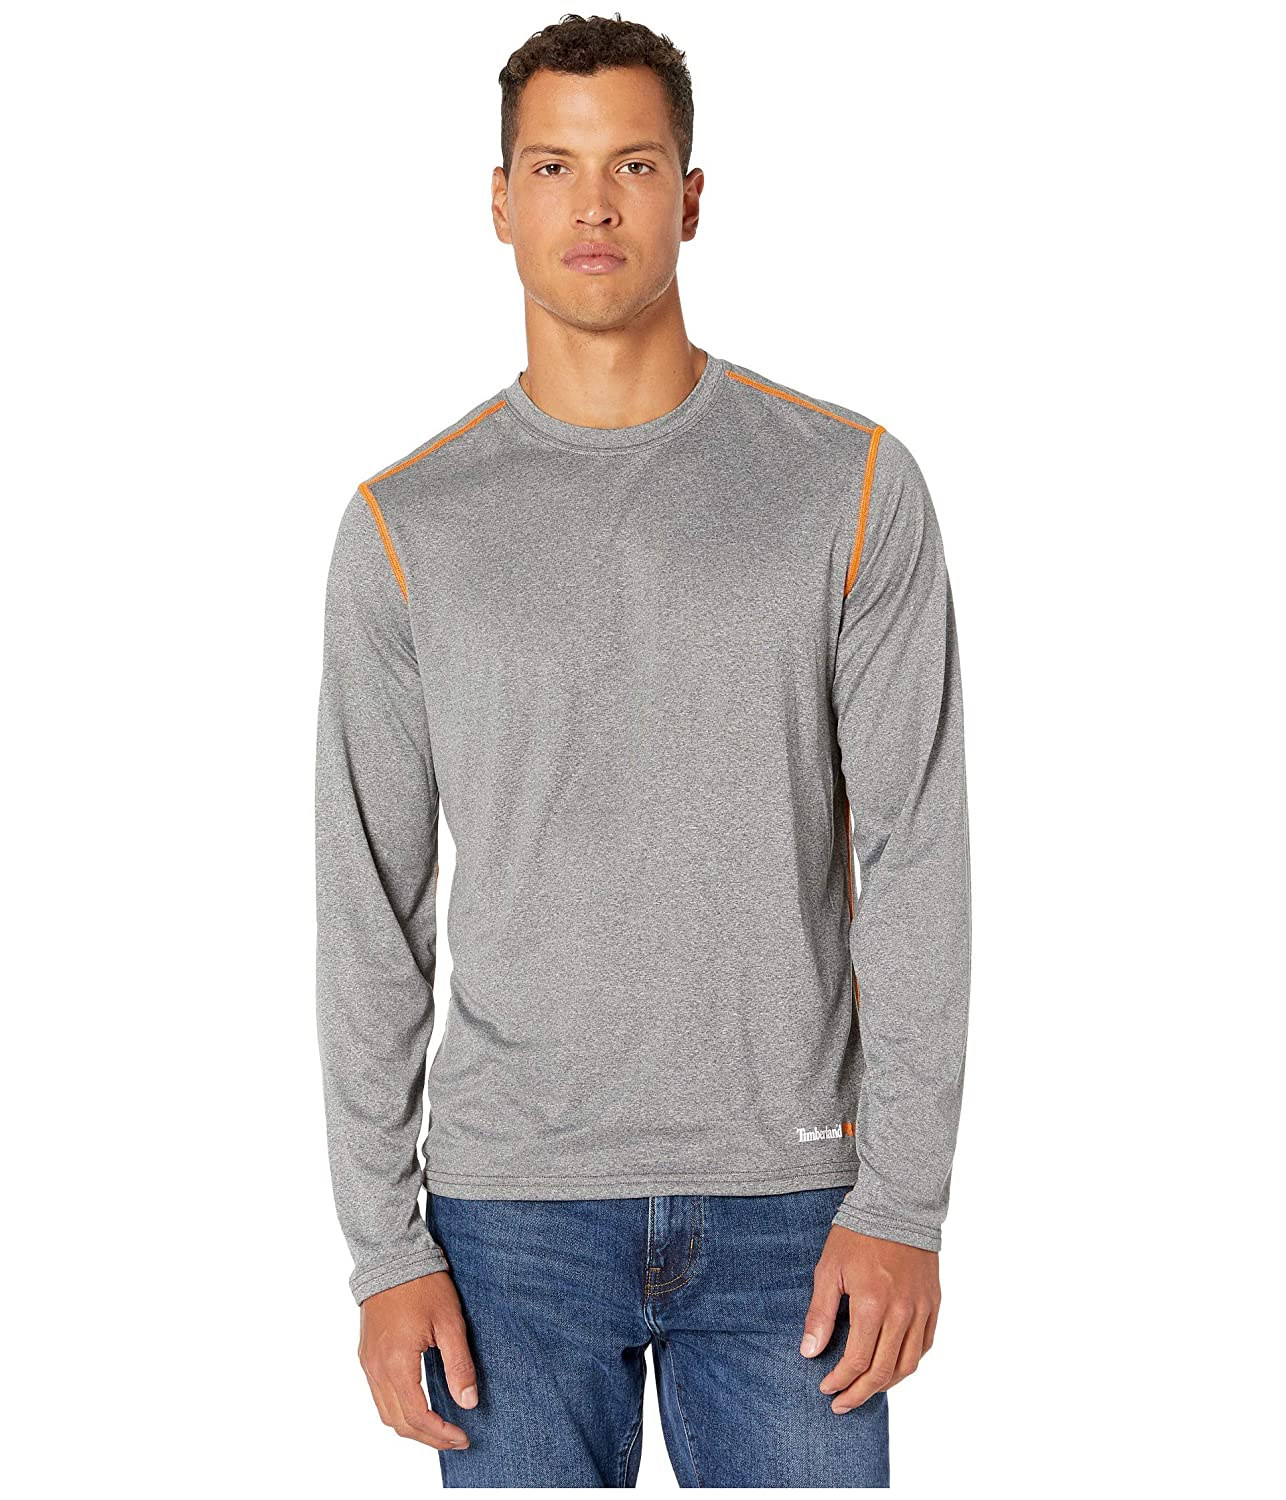 Timberland Mens Wicking Good Sport Long-Sleeve T-Shirt Work Utility T-Shirt